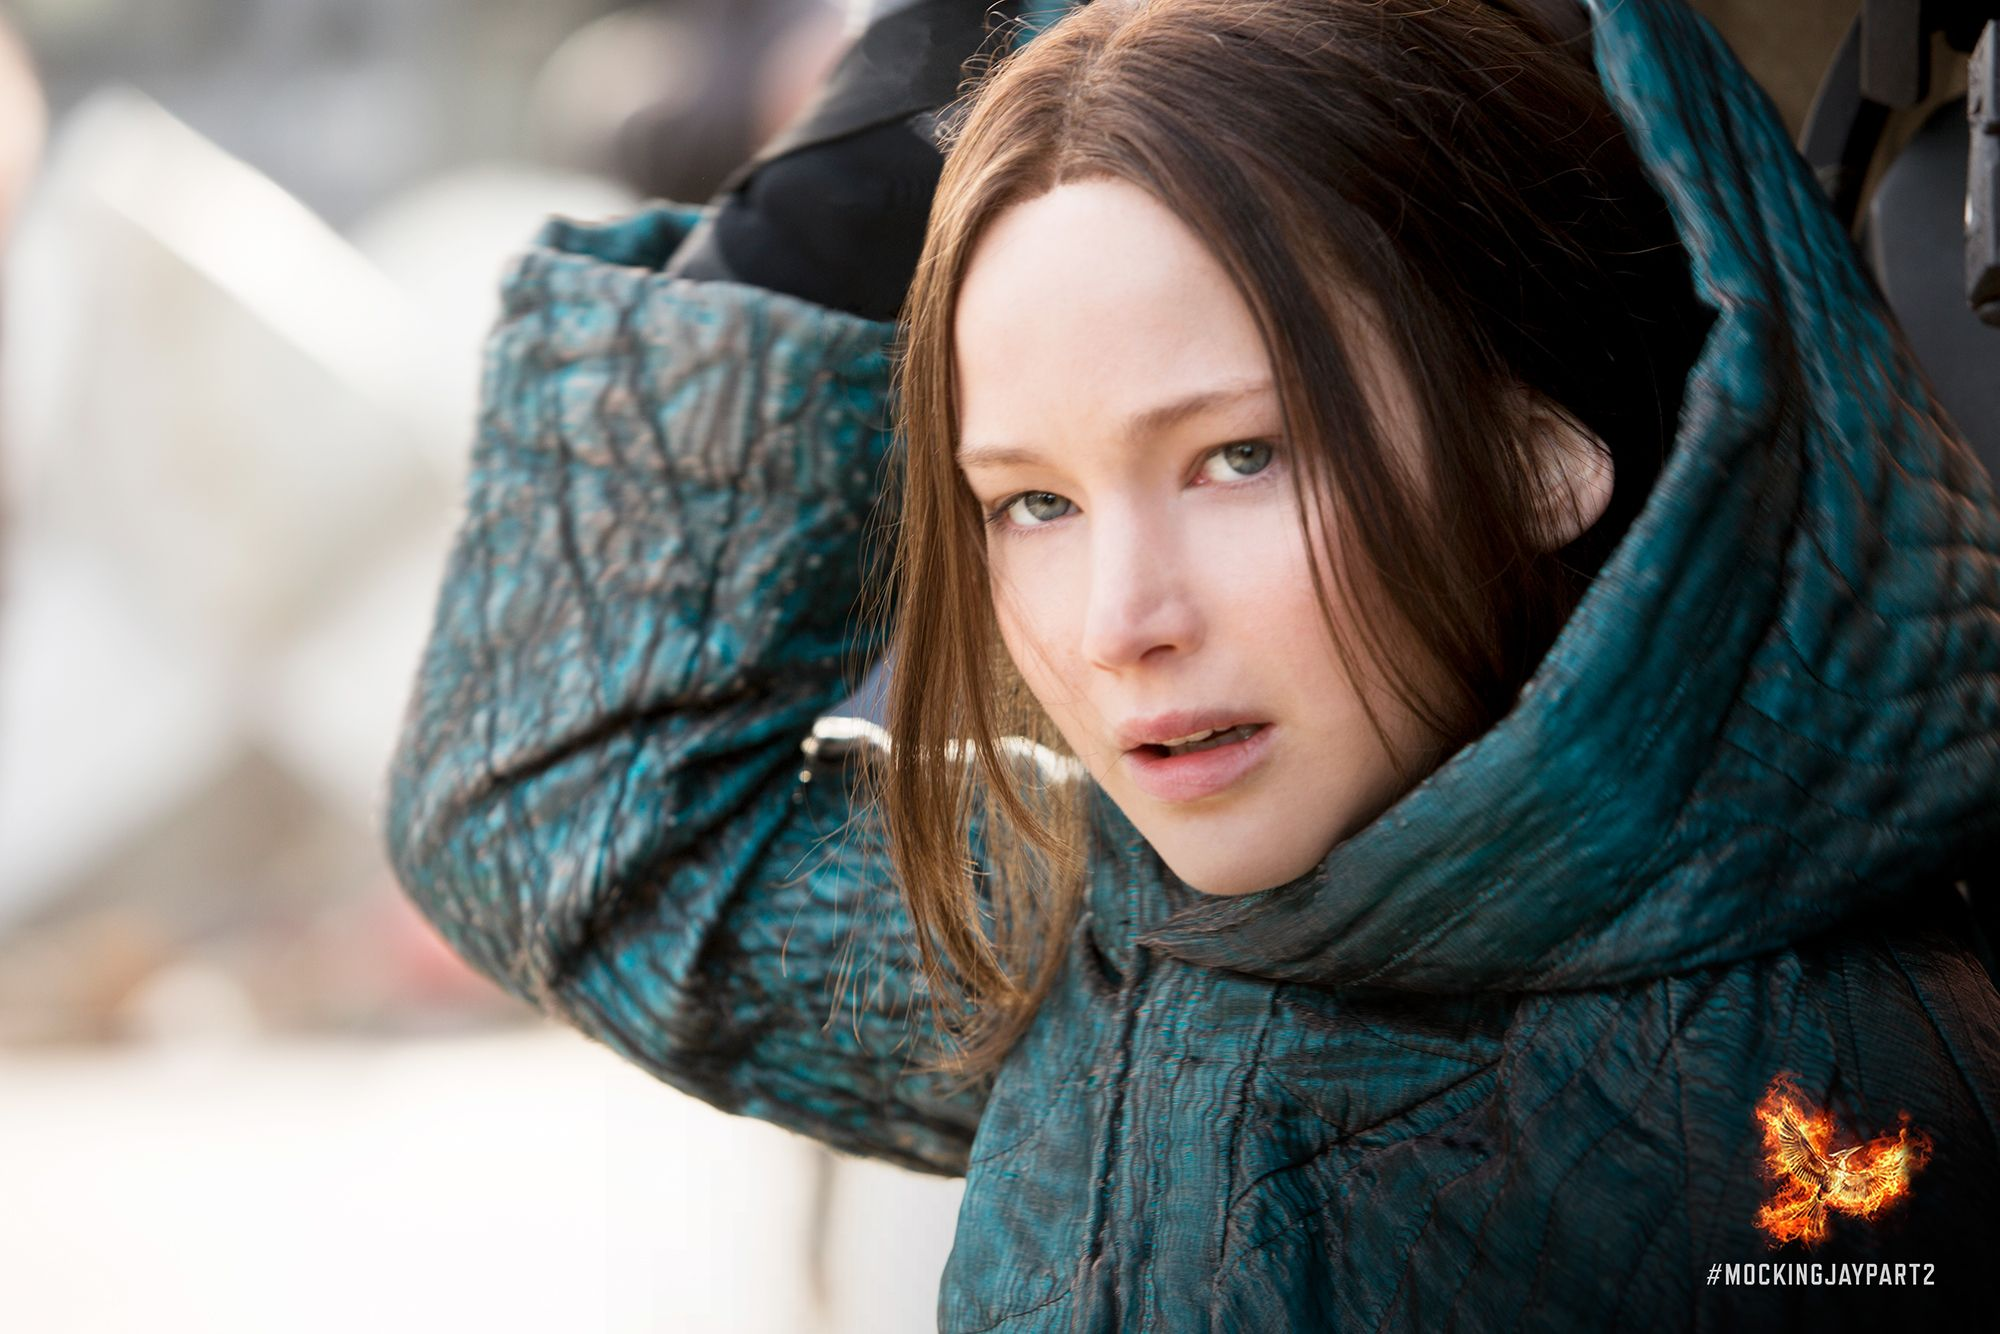 Going undercover in the Capitol… Katniss Everdeen. #MockingjayPart2